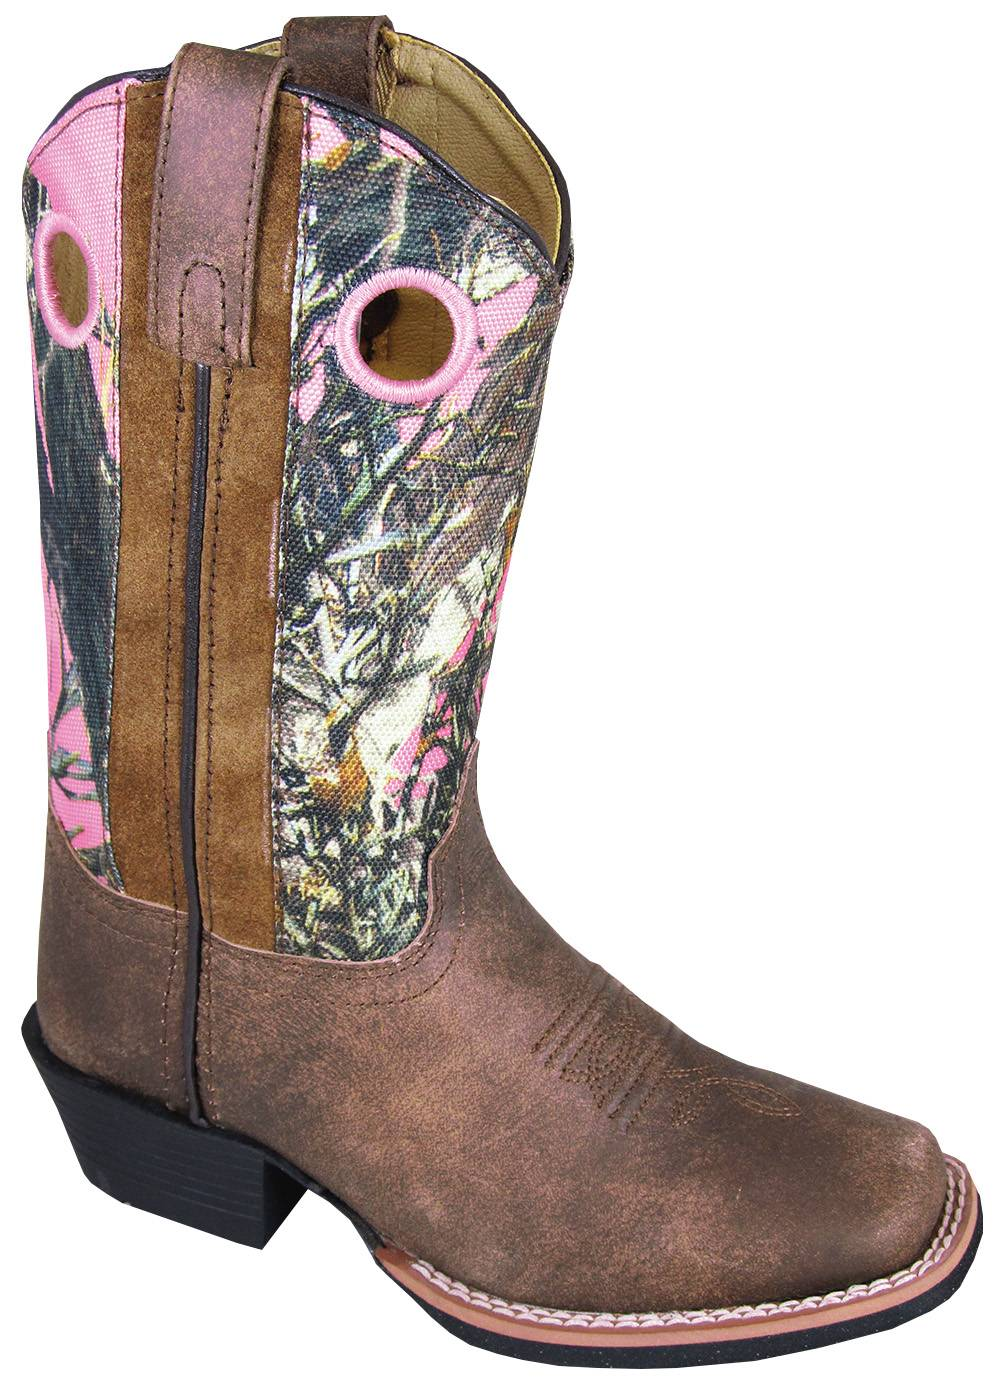 Smoky Mountain Mesa Square Toe Boots - Youth, Brown/Pink Camo